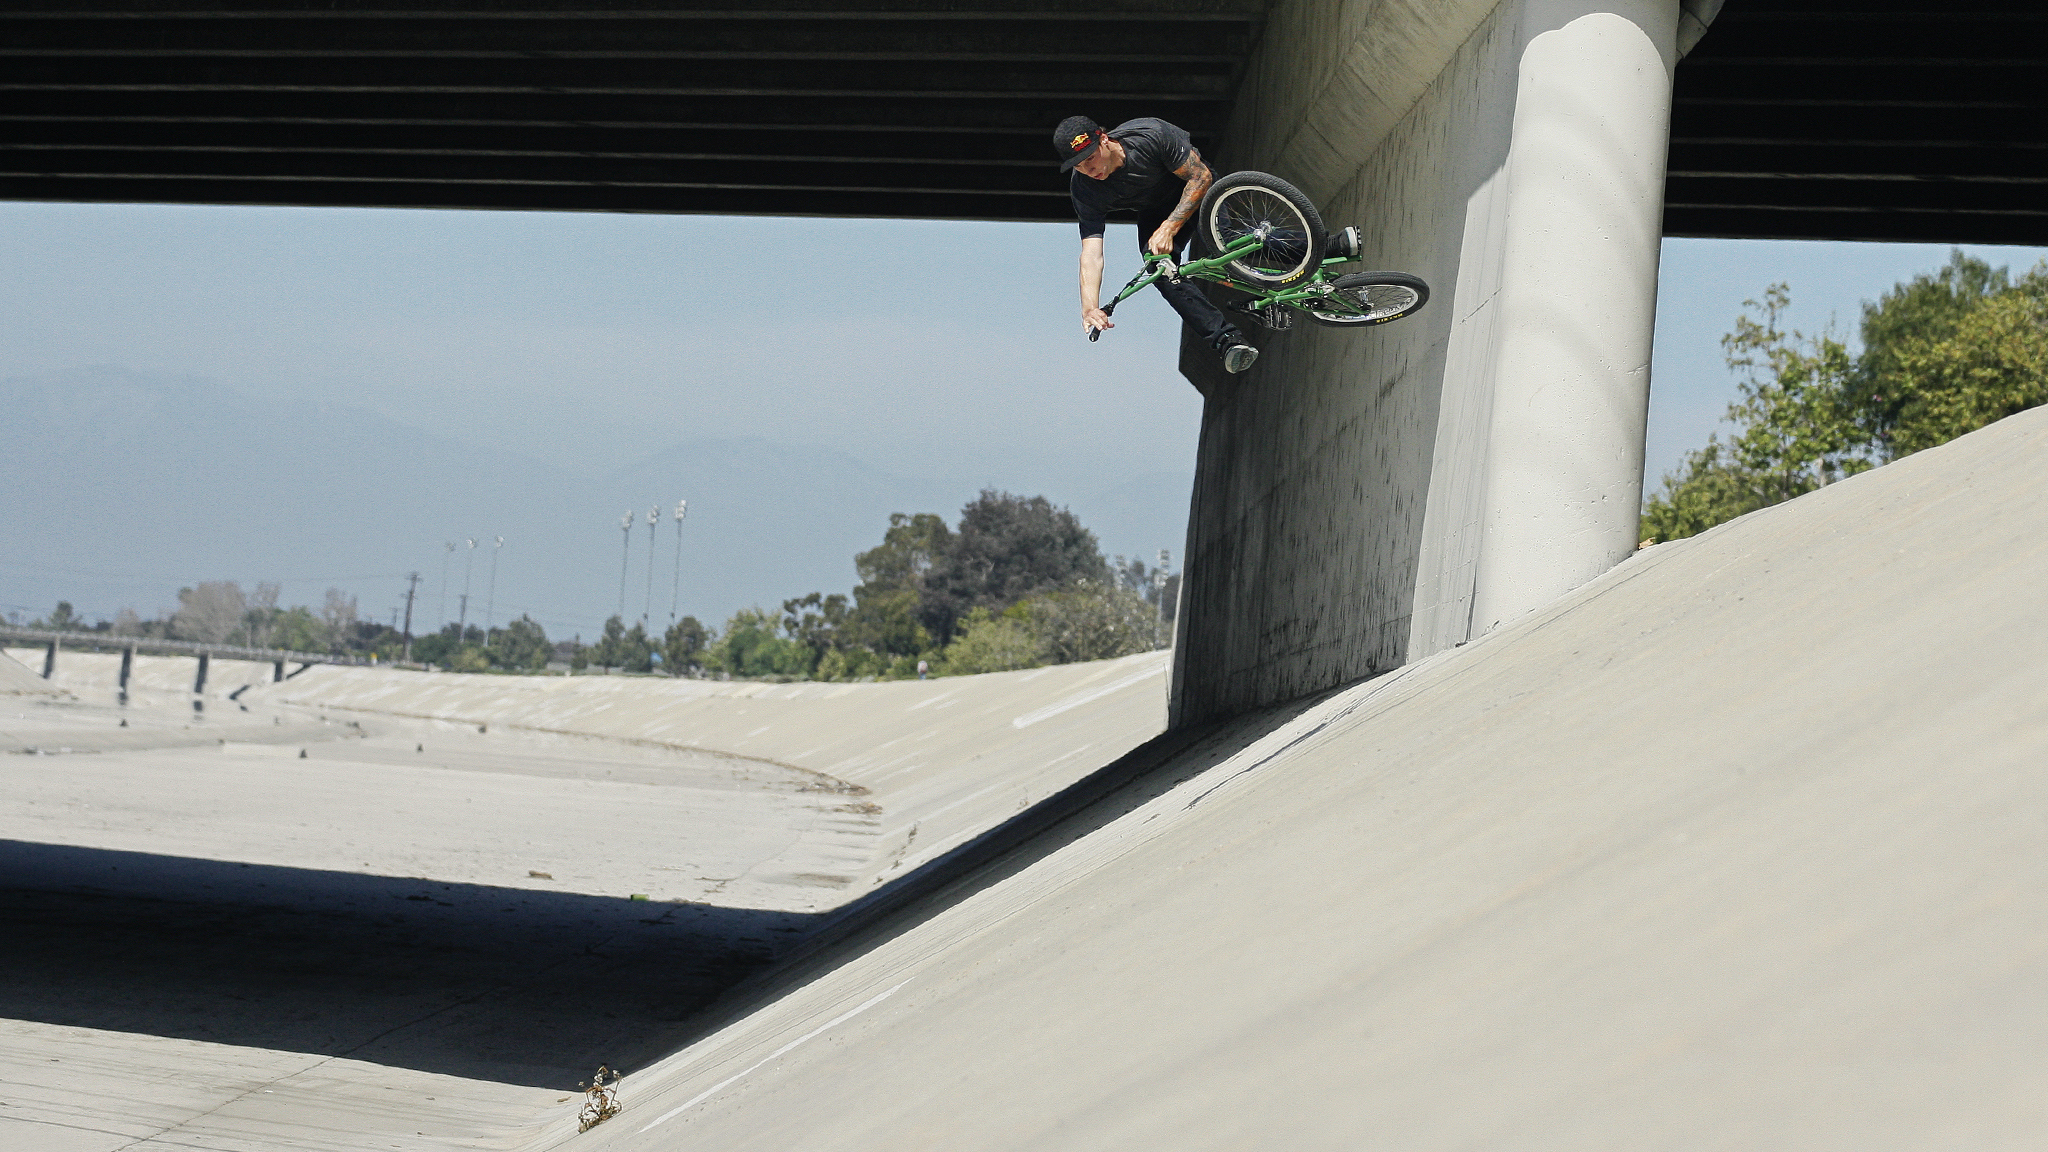 Anthony, wall ride to one-footed table